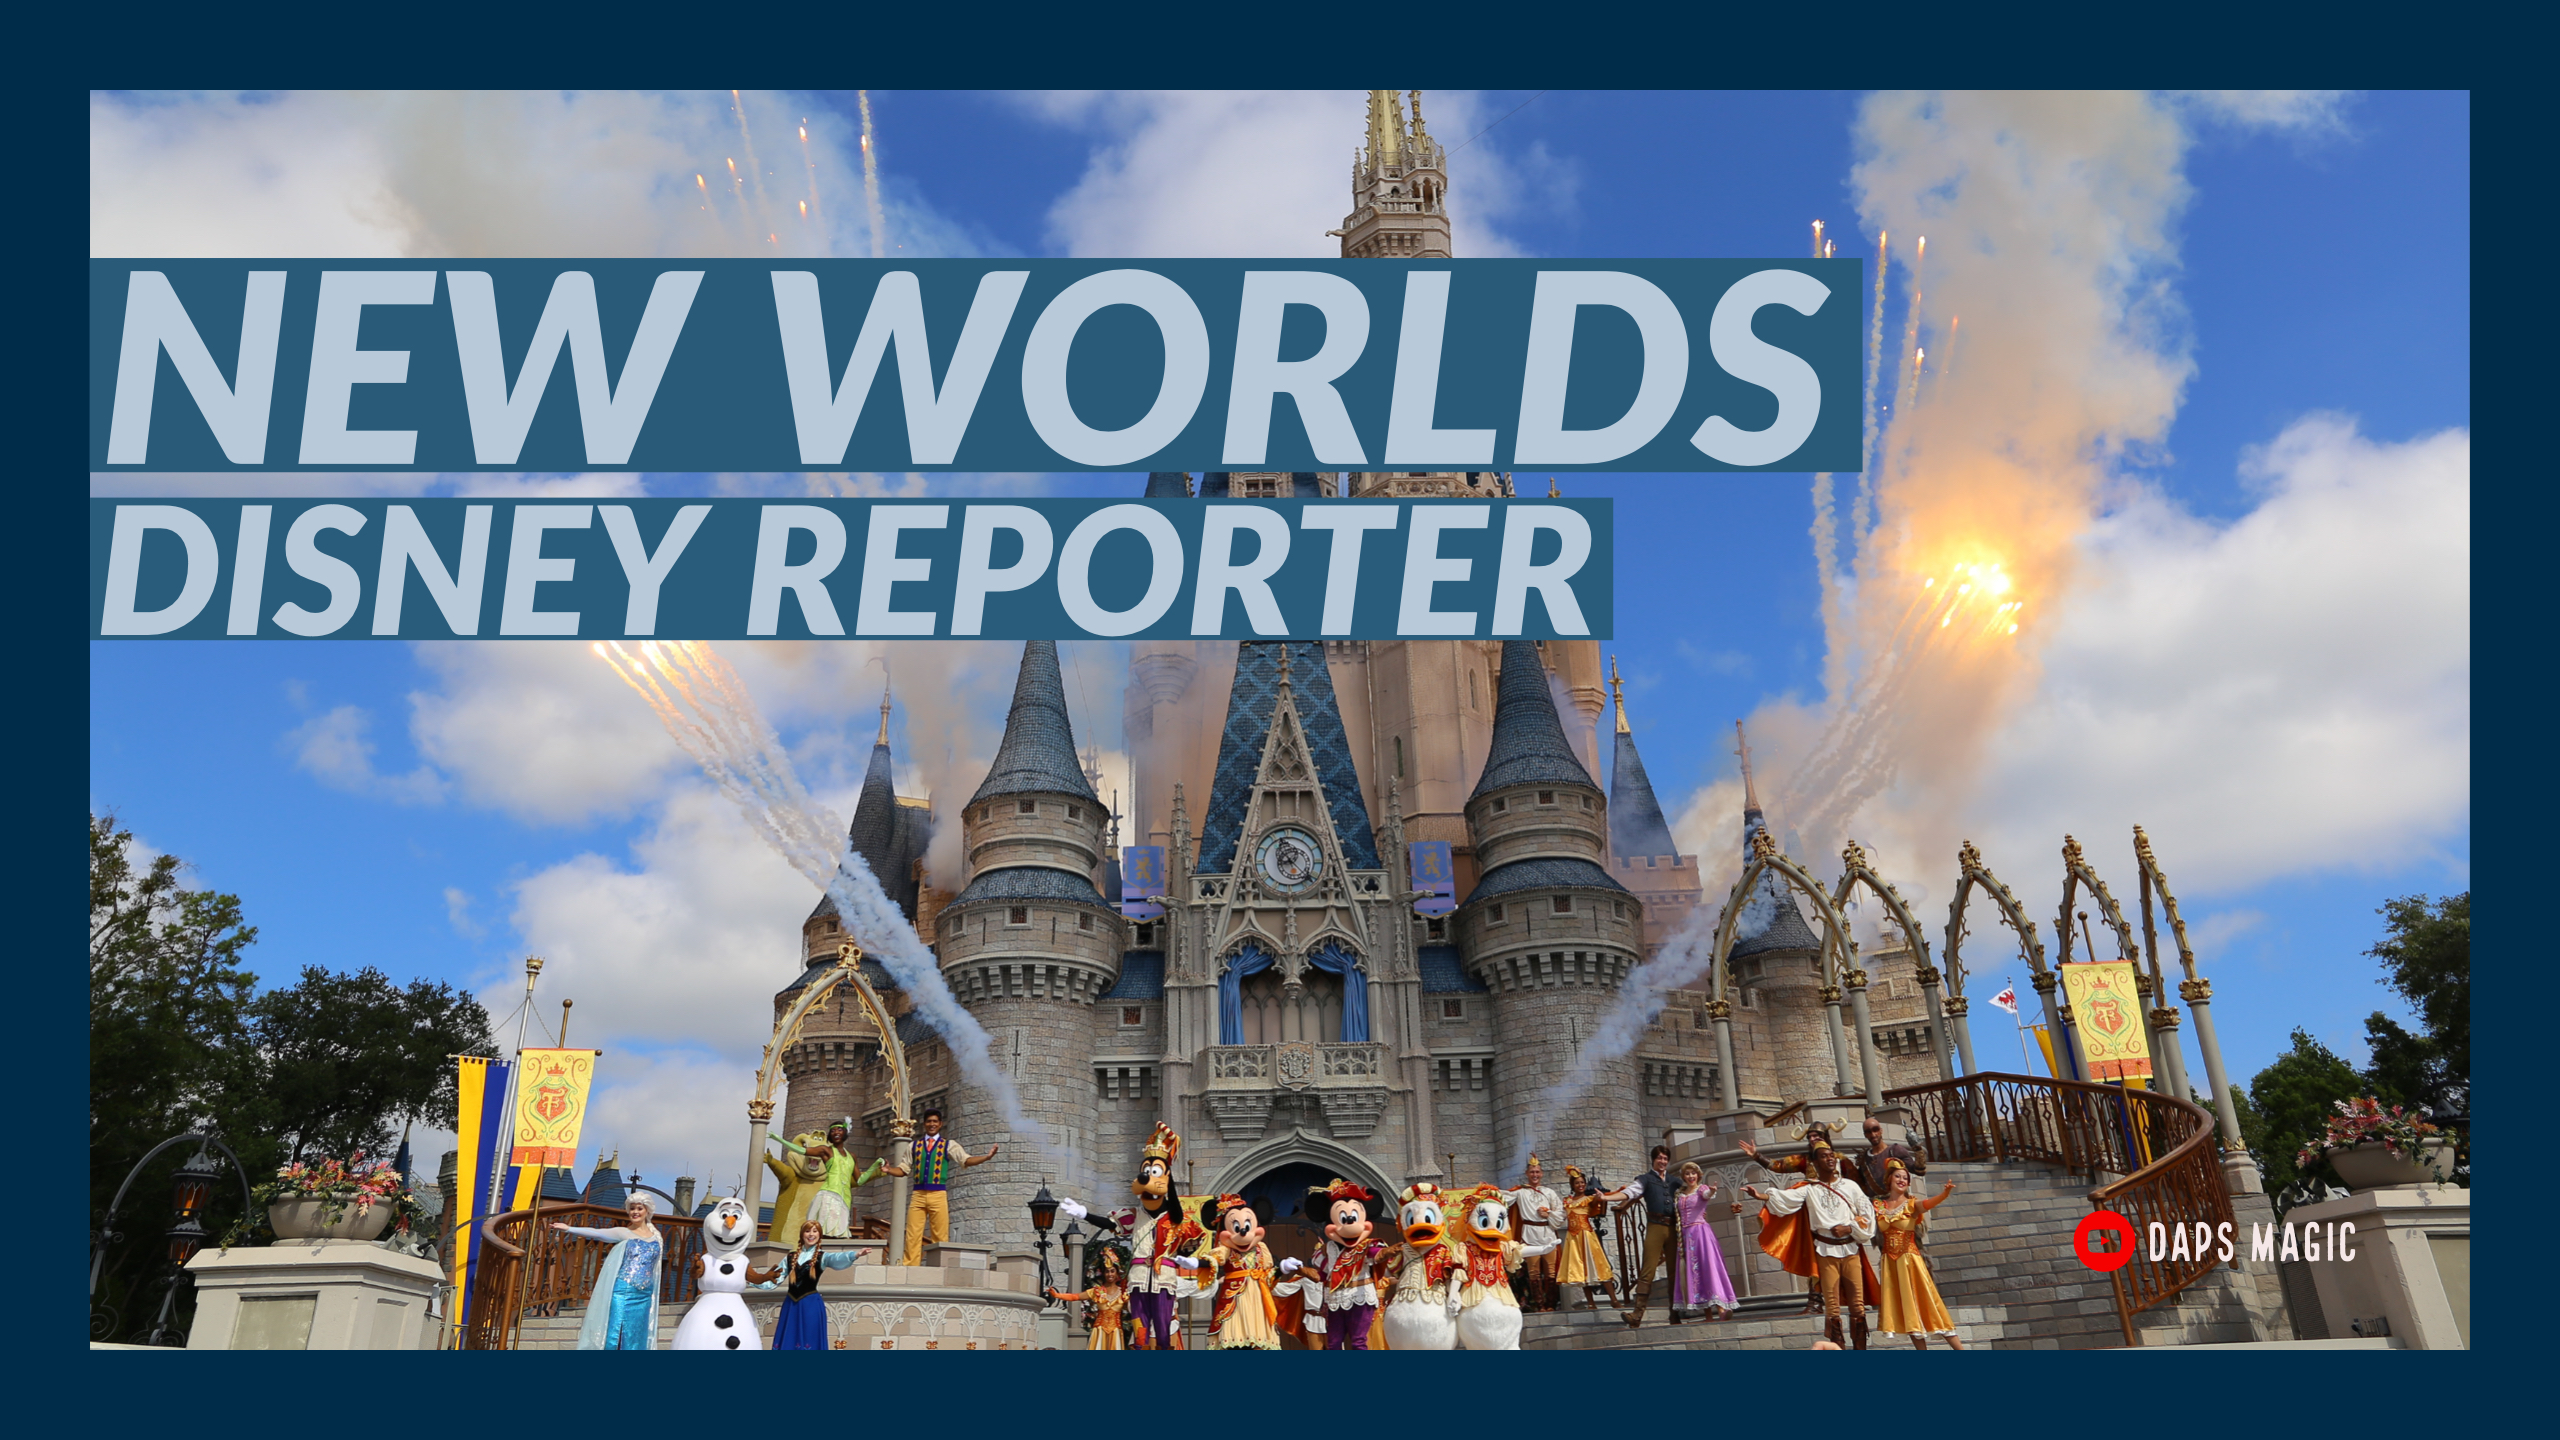 New Worlds - DISNEY Reporter